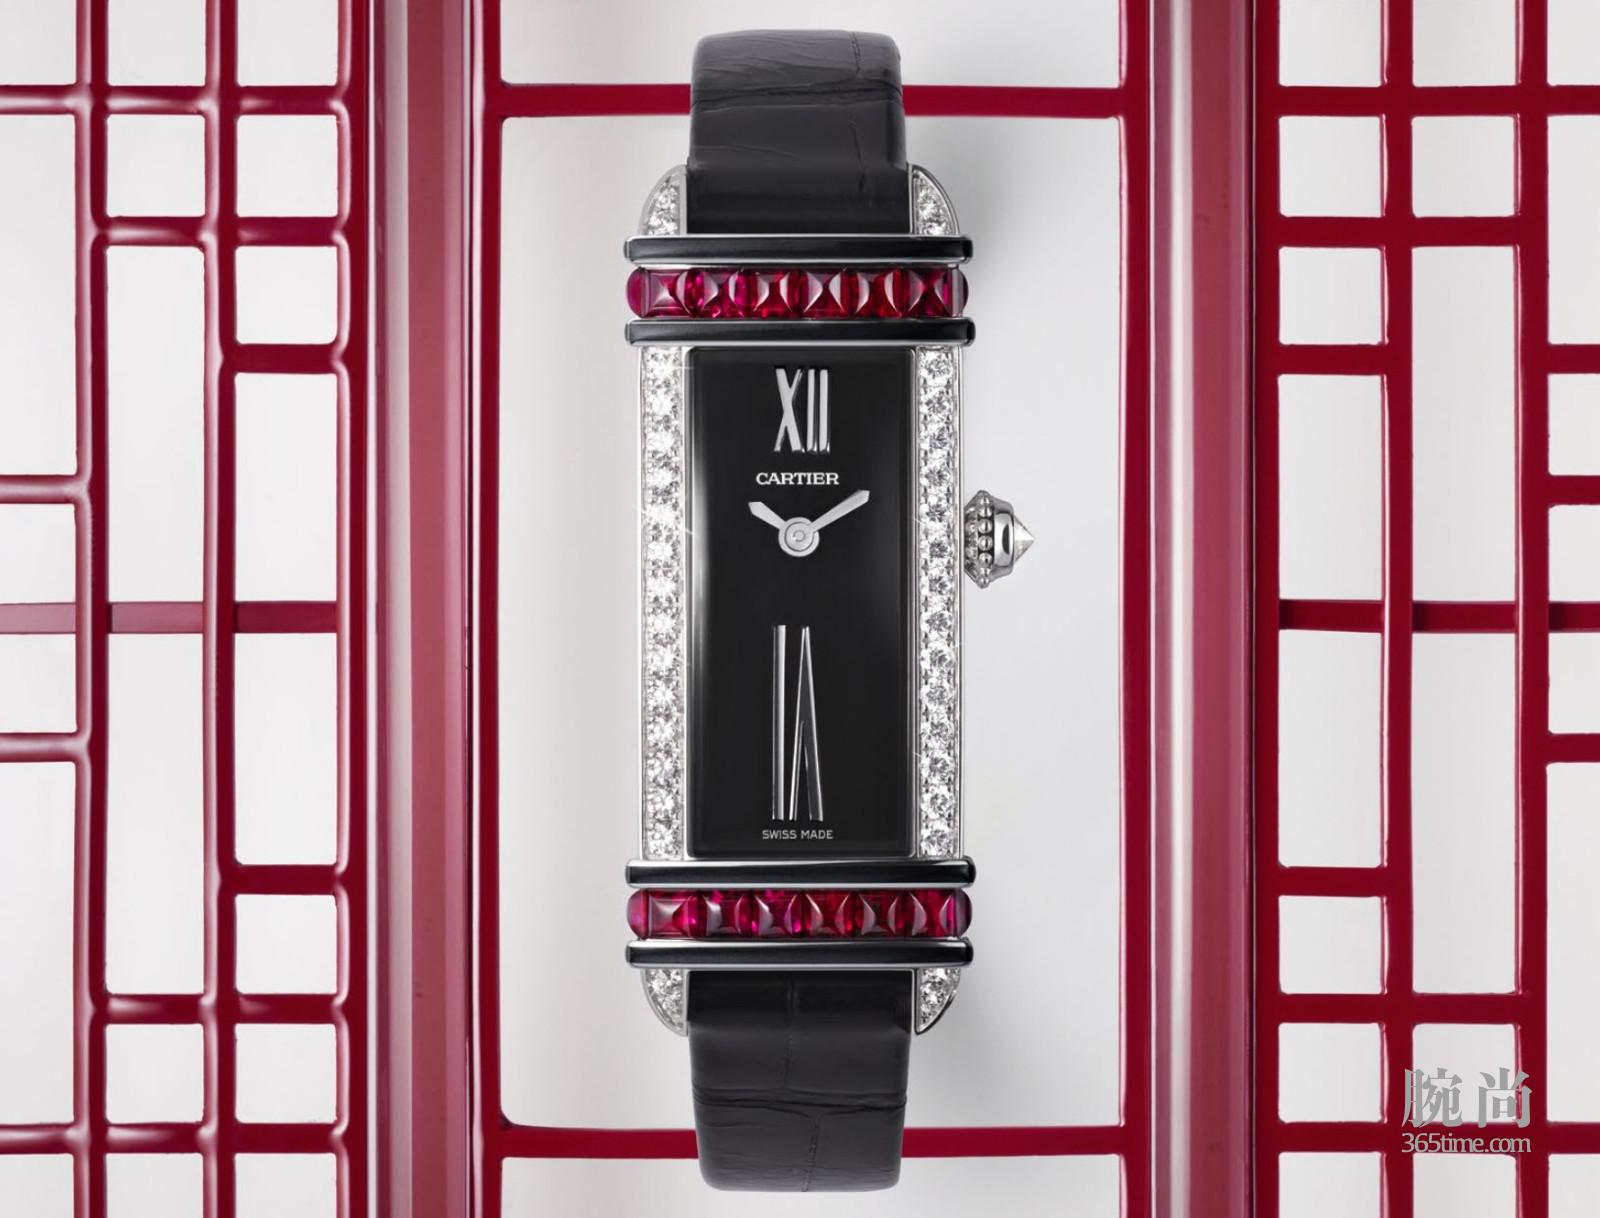 SIHH-2019-Cartier-Libre-Jewelry-collection-3.jpg